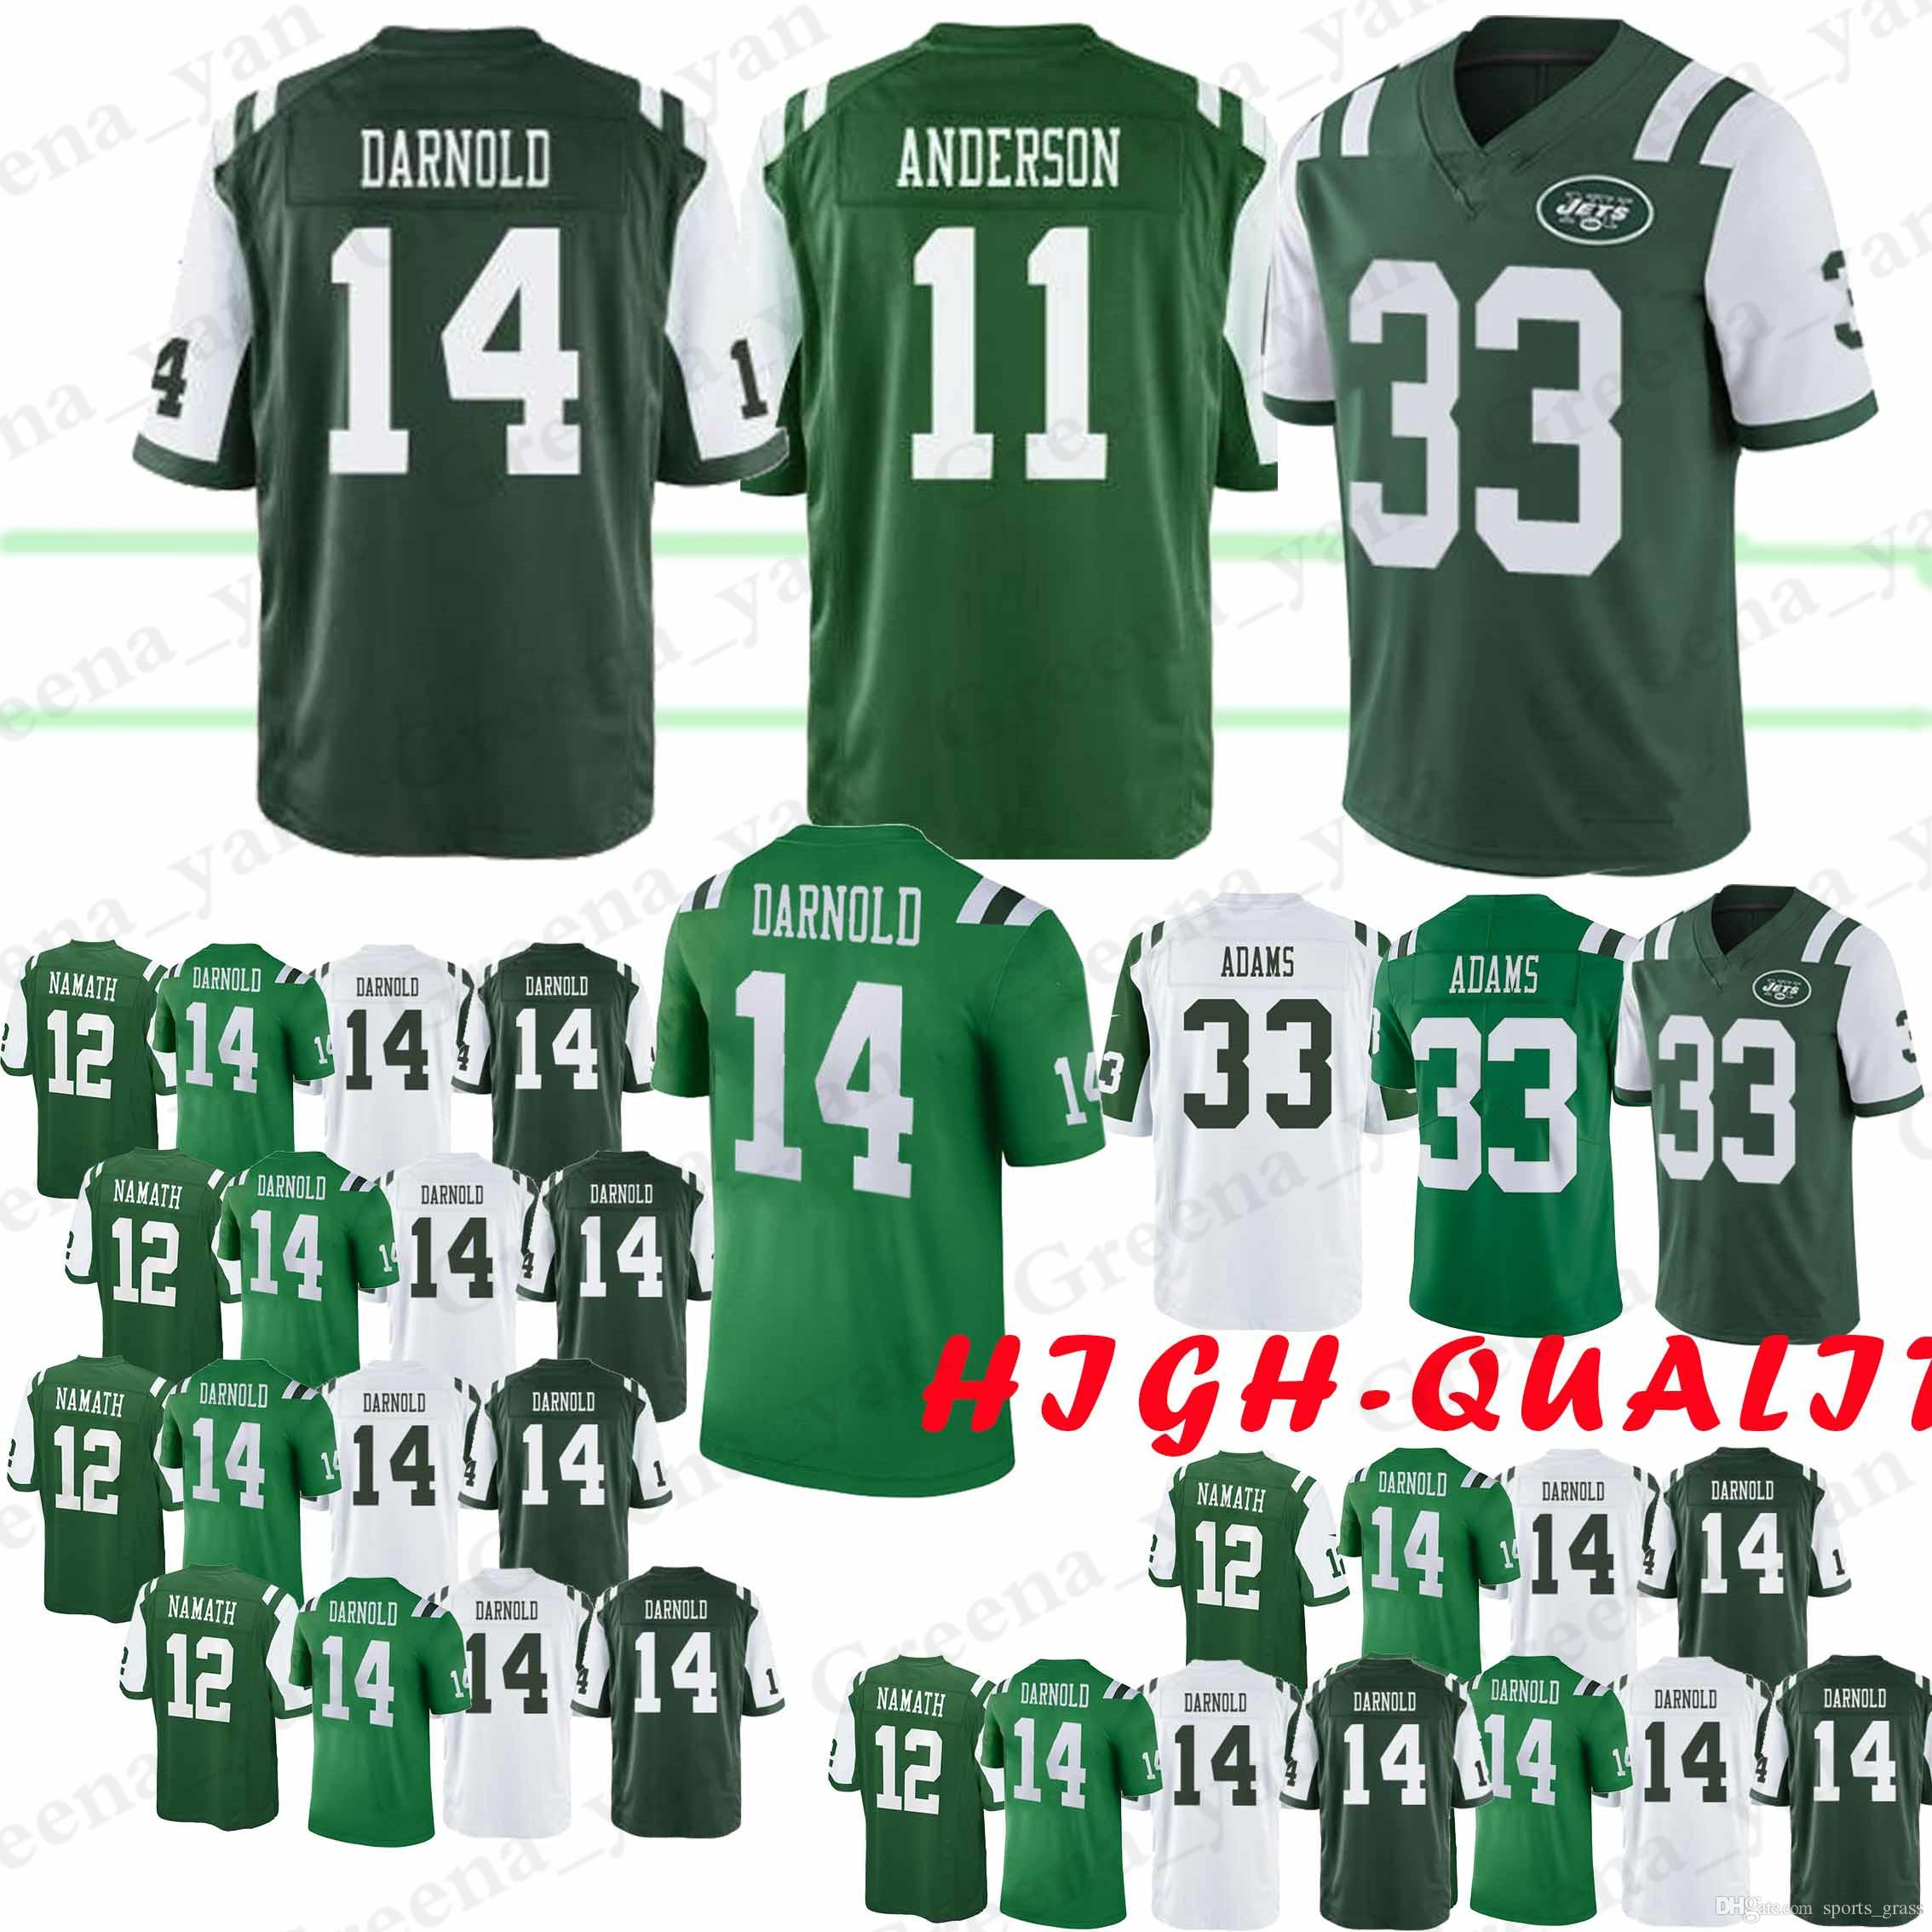 new arrival 2c5f3 4ce86 14 Sam Darnold New 11 Robby Anderson York Jets jersey 33 Jamal Adams 12 Joe  Namath jersey 2019 new Top quality